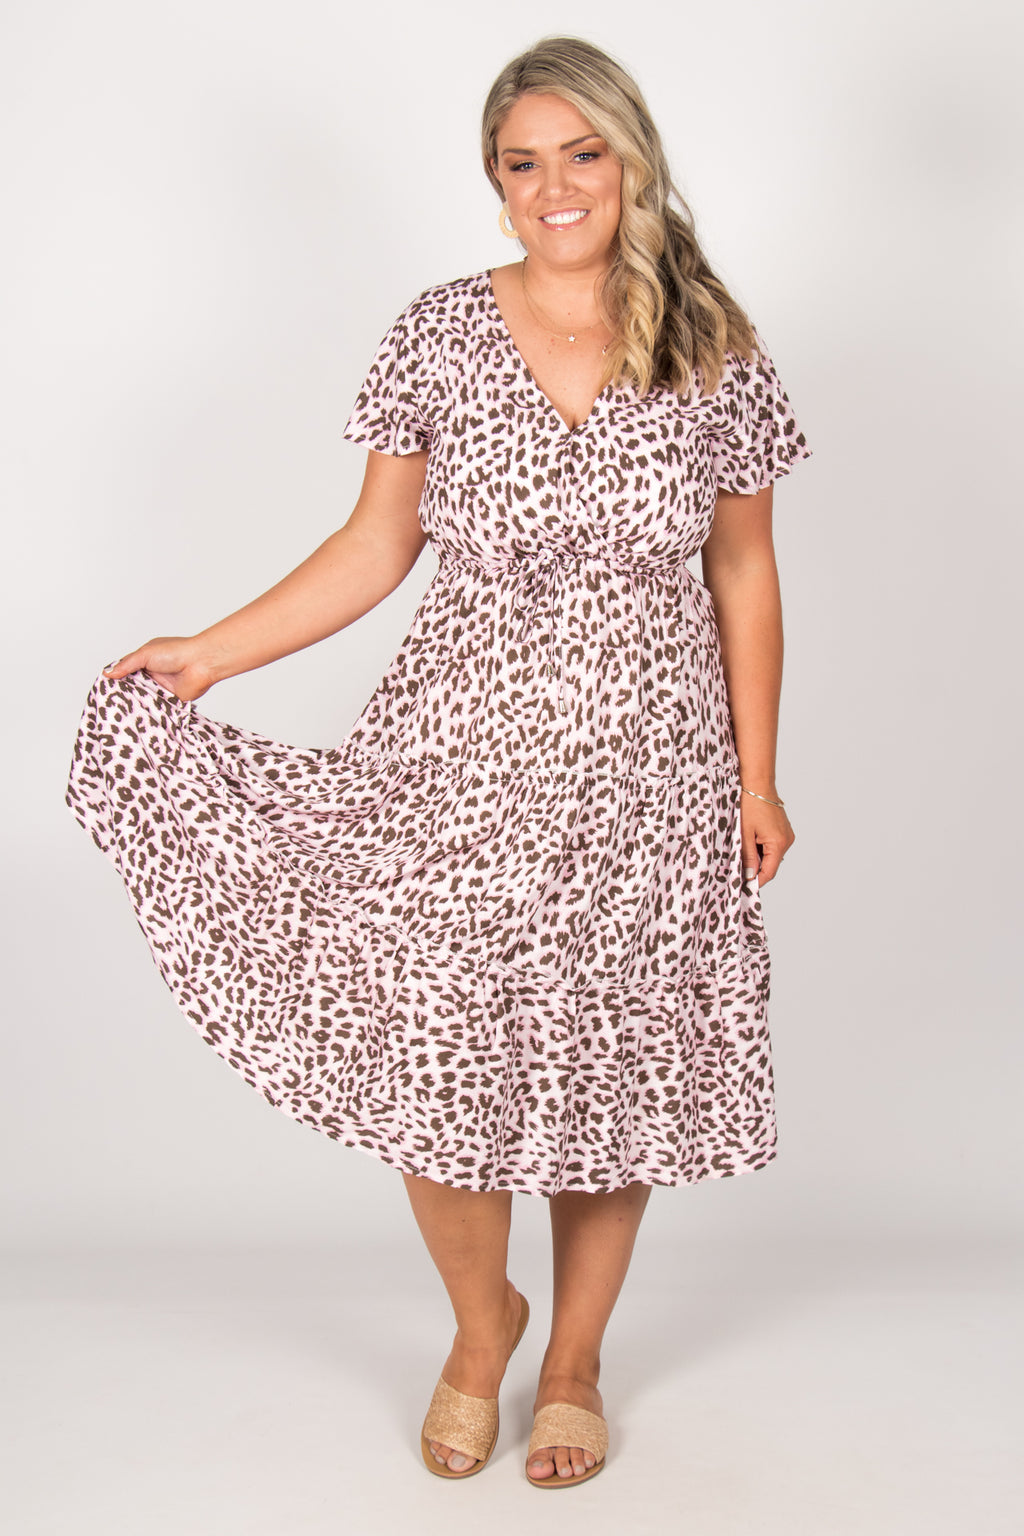 Lacey Dress in Pink Leopard